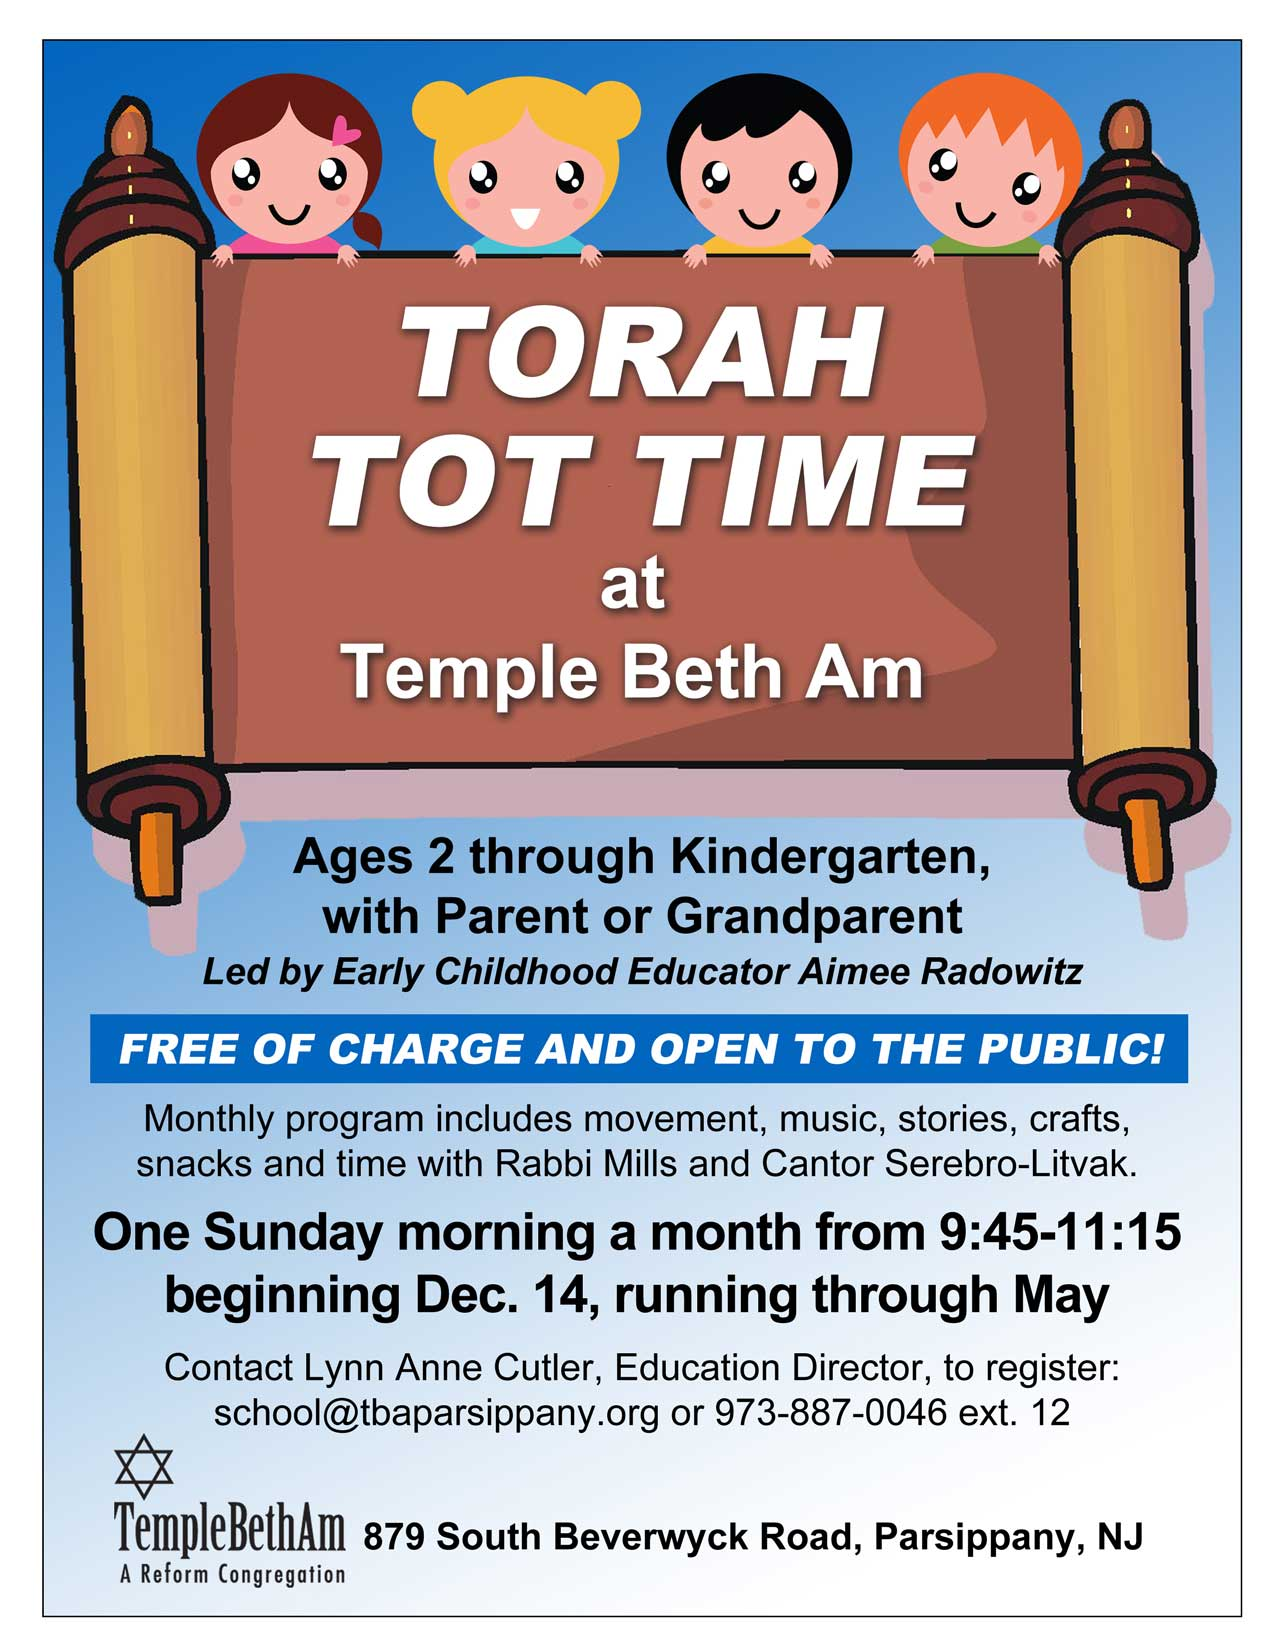 TORAH-TOT-TIME-revised